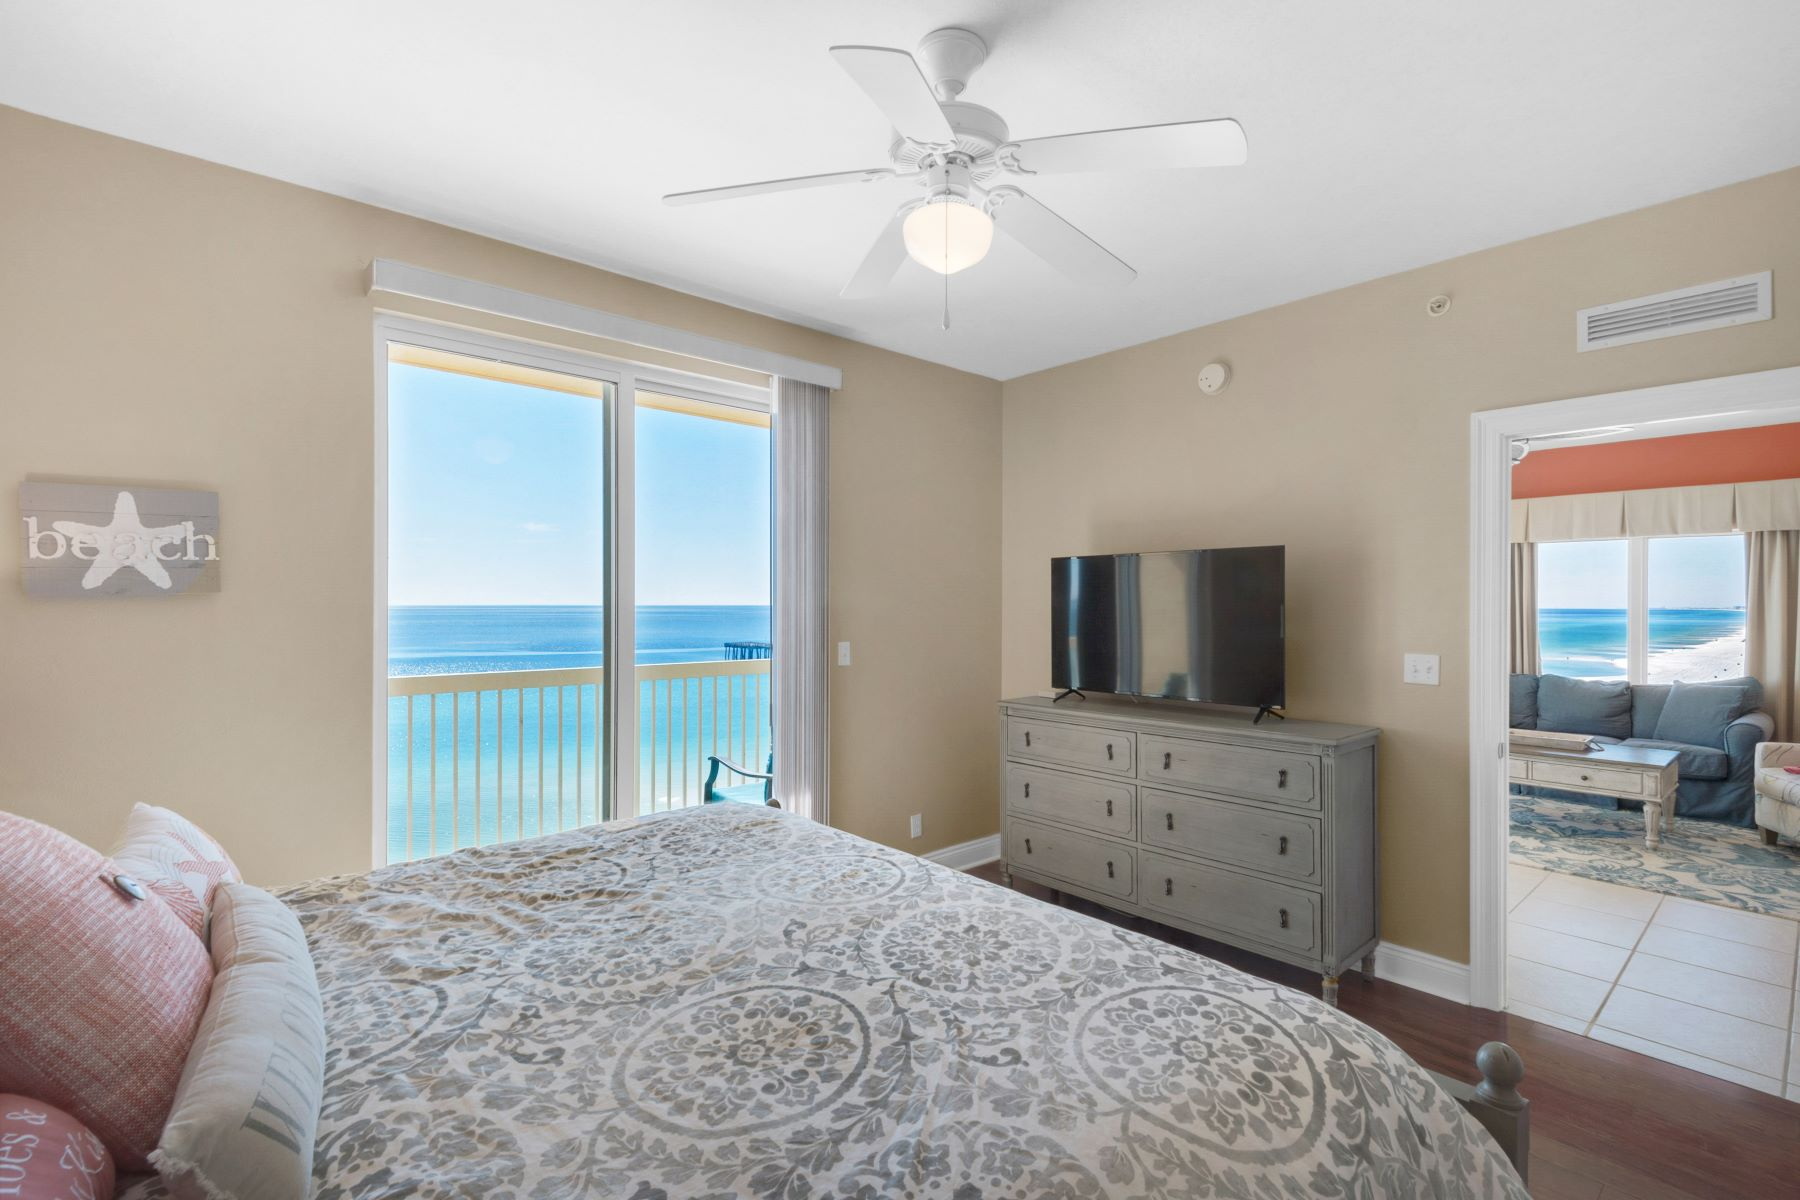 Condominiums for Sale at Condo with Gulf Views and Strong Rental History at Calypso Towers 15817 Front Beach Road 2-1009, Panama City Beach, Florida 32413 United States